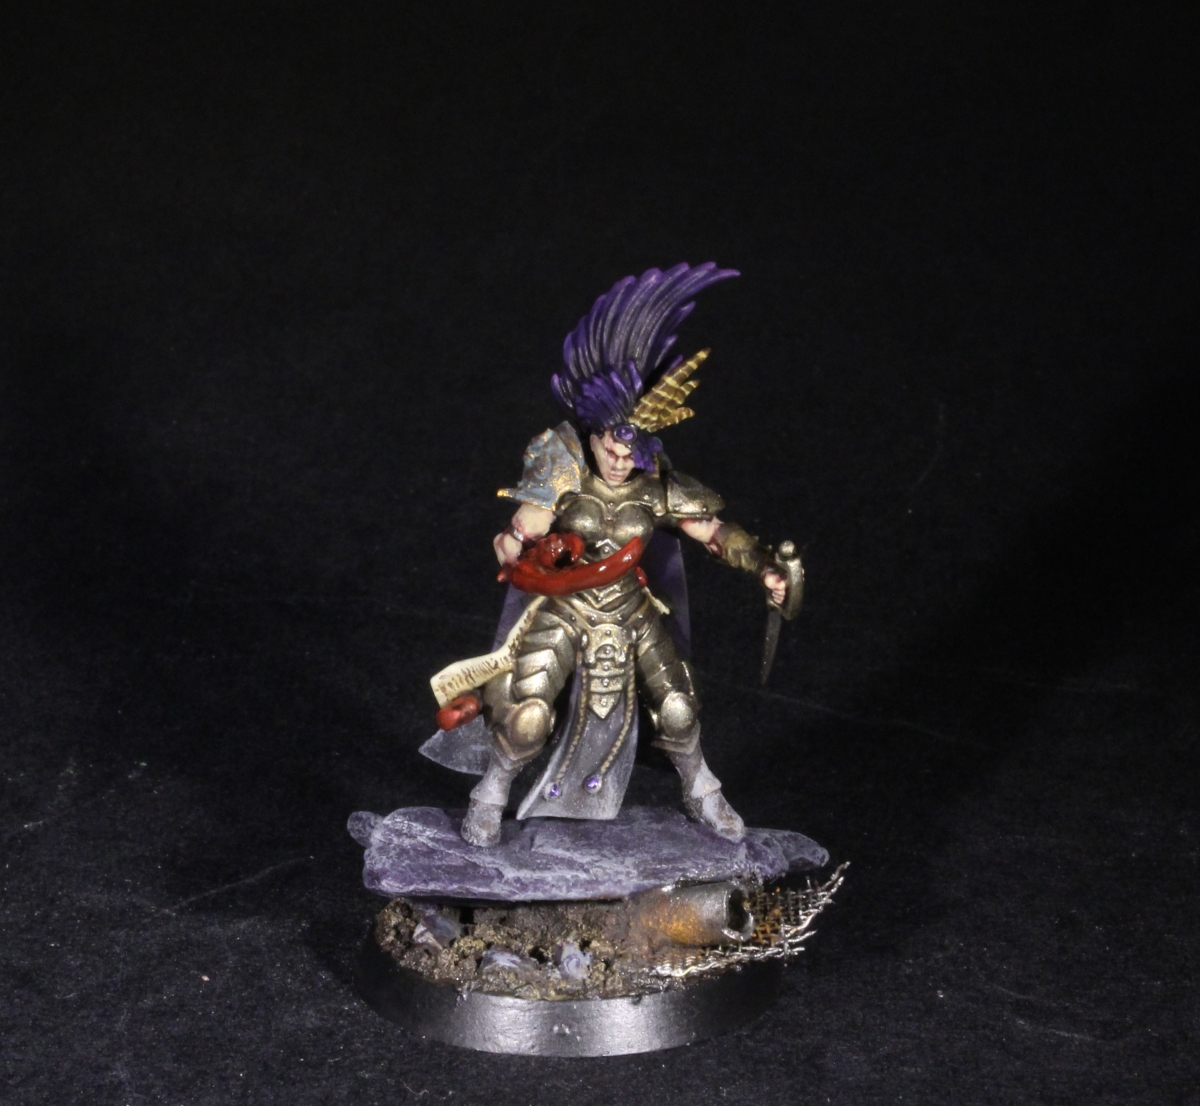 The Guardian Huntress - Slaaneshi Cult Warrior